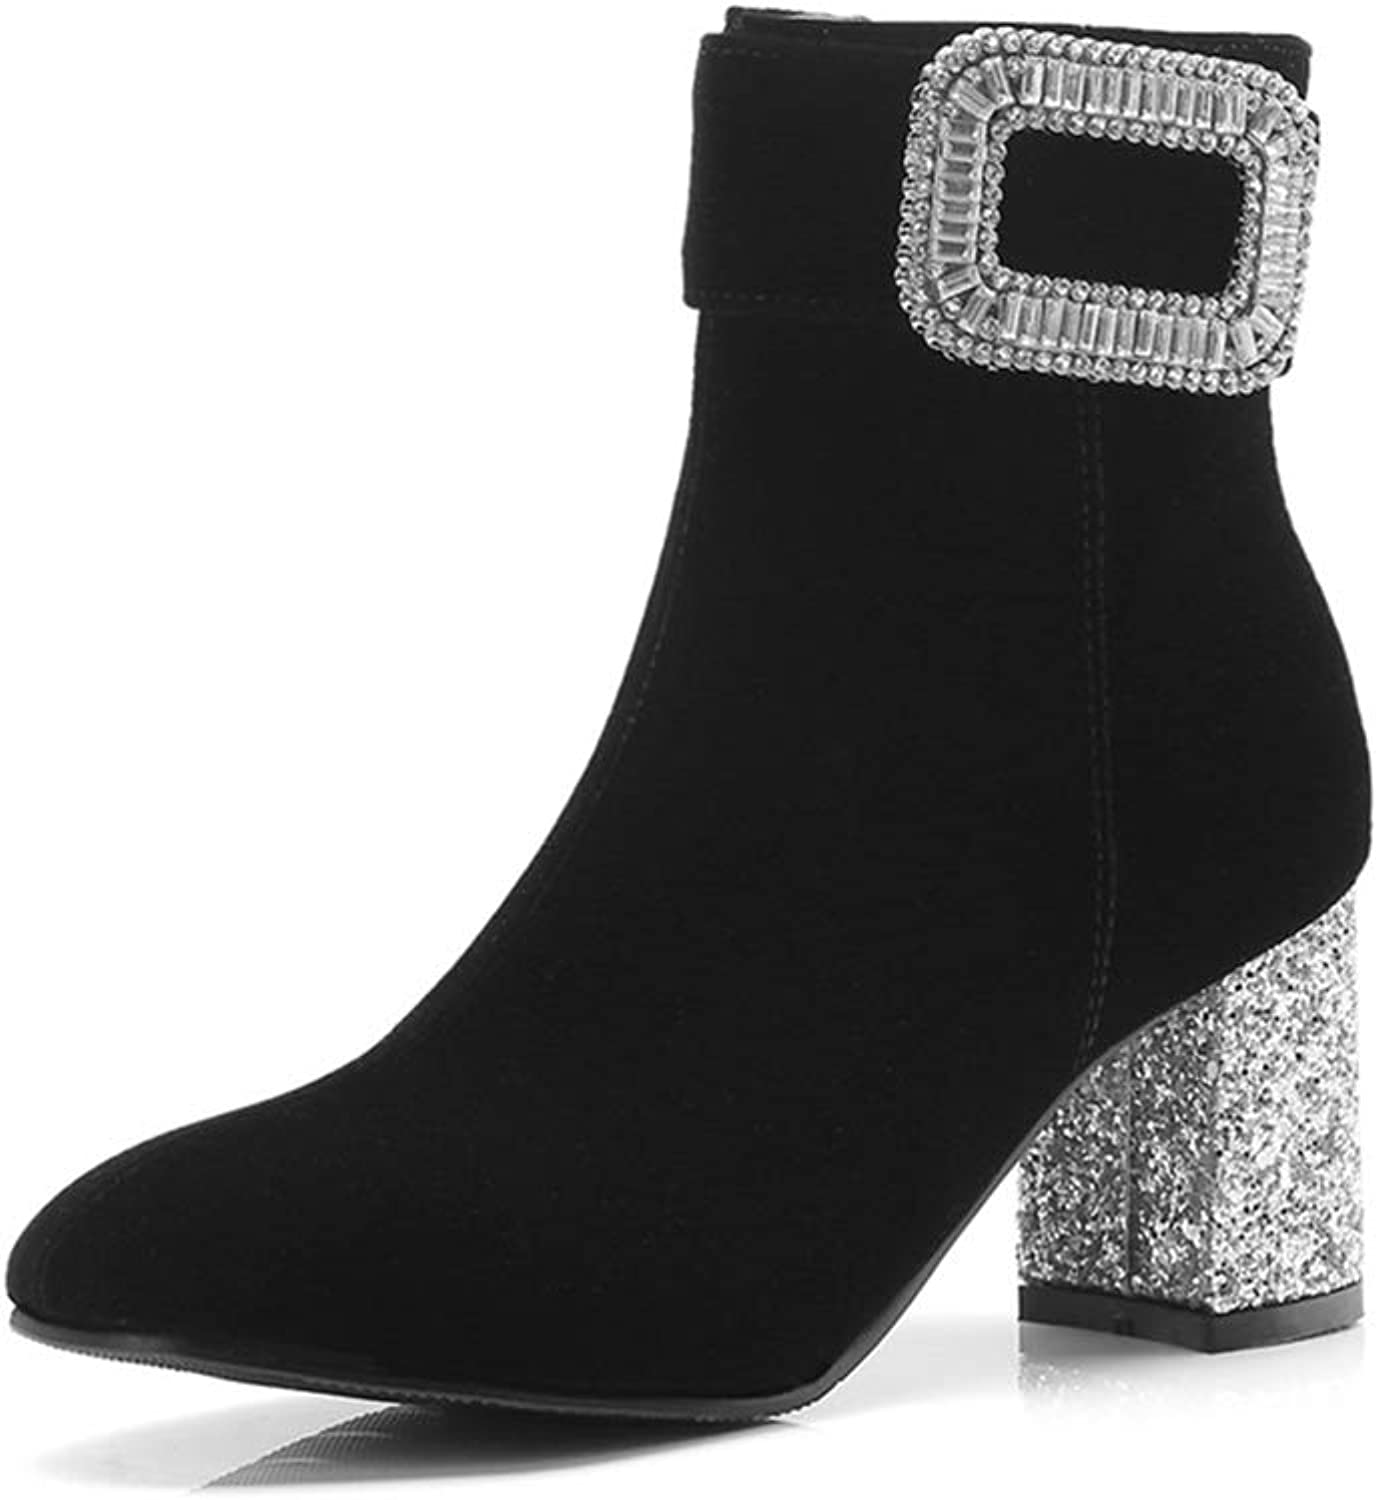 Womens Square High Heel Ankle Boots Zipper Flock Sexy Party Crystal Bling Decoration Square Toe Booties